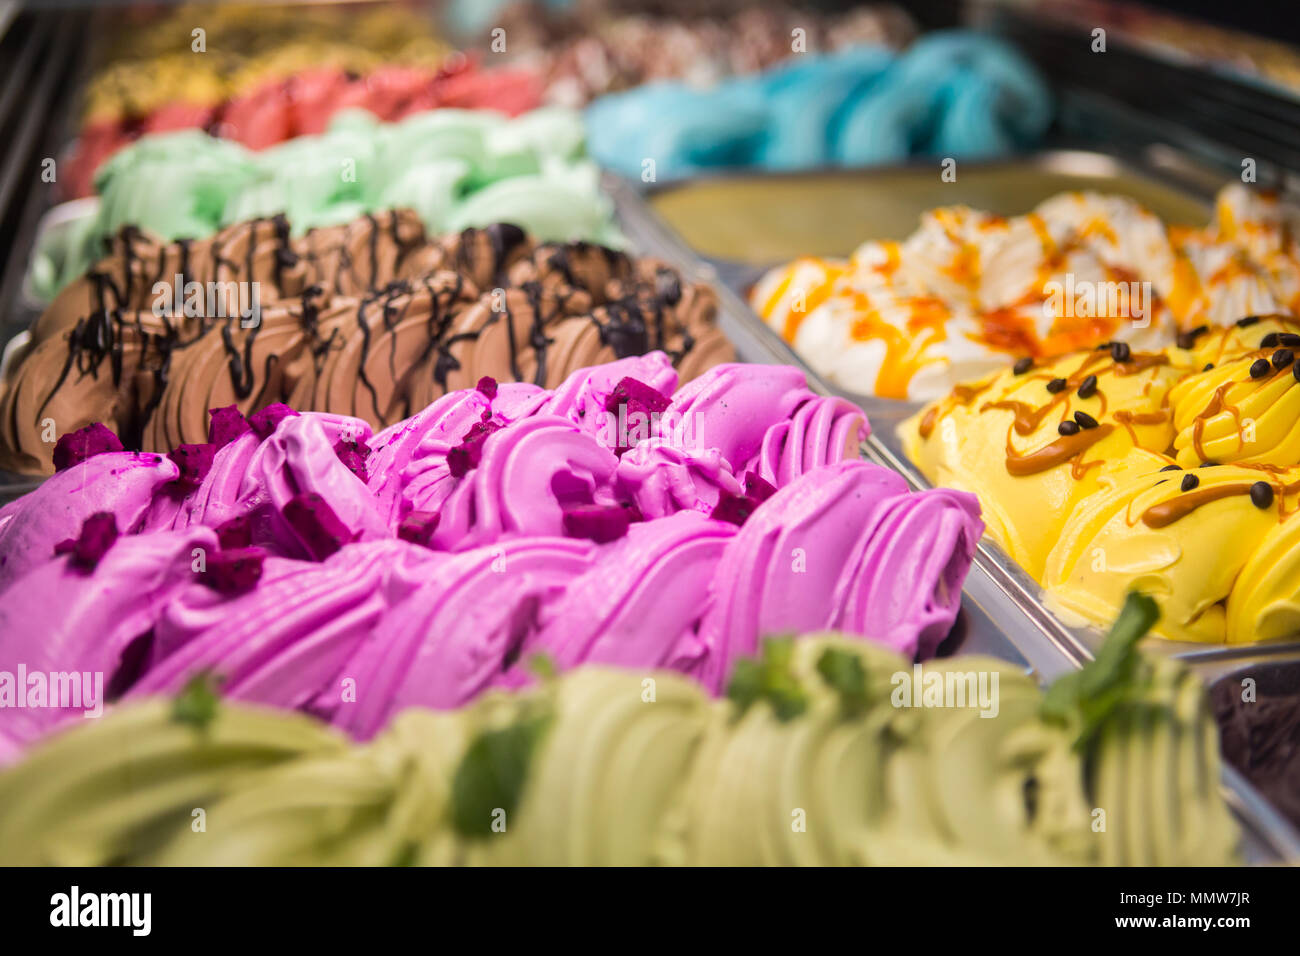 Close up picture of different gelato on display - Stock Image